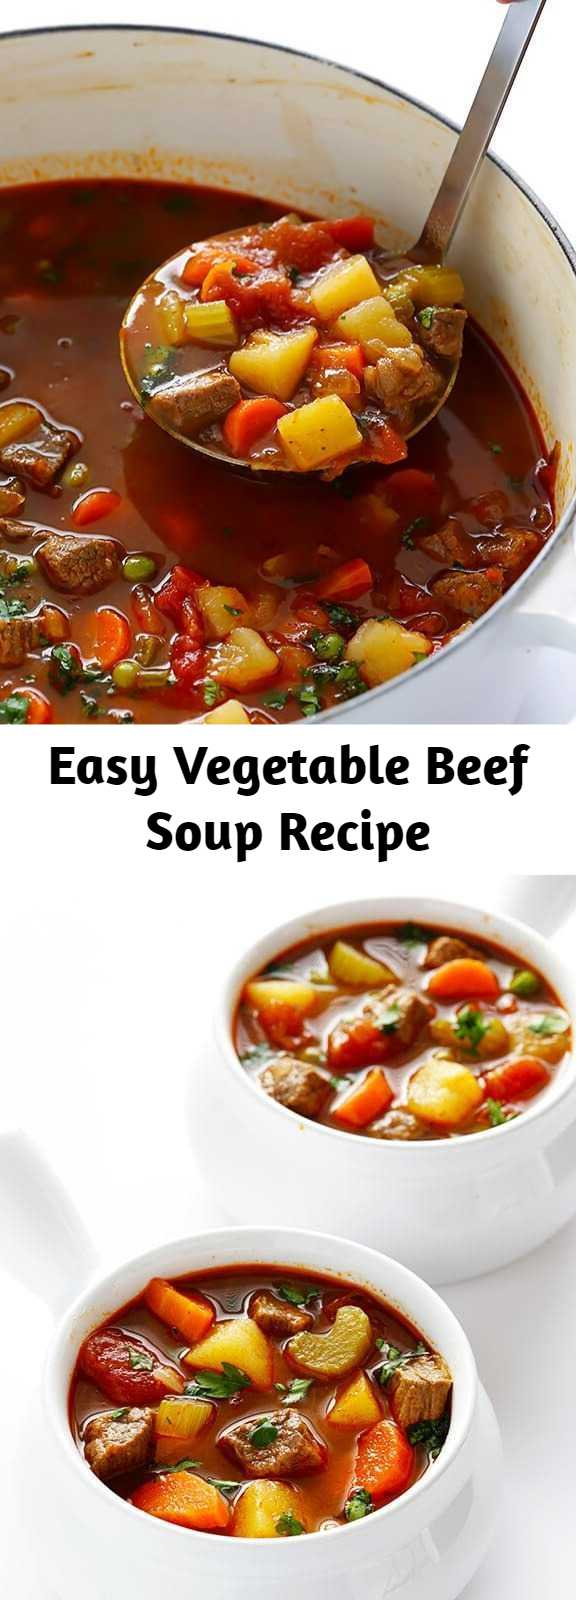 Easy Vegetable Beef Soup Recipe - This vegetable beef soup recipe is a classic — full of tender steak, lots of veggies, and delicious flavor! Especially on freezing cold winter days, it always hits the spot.